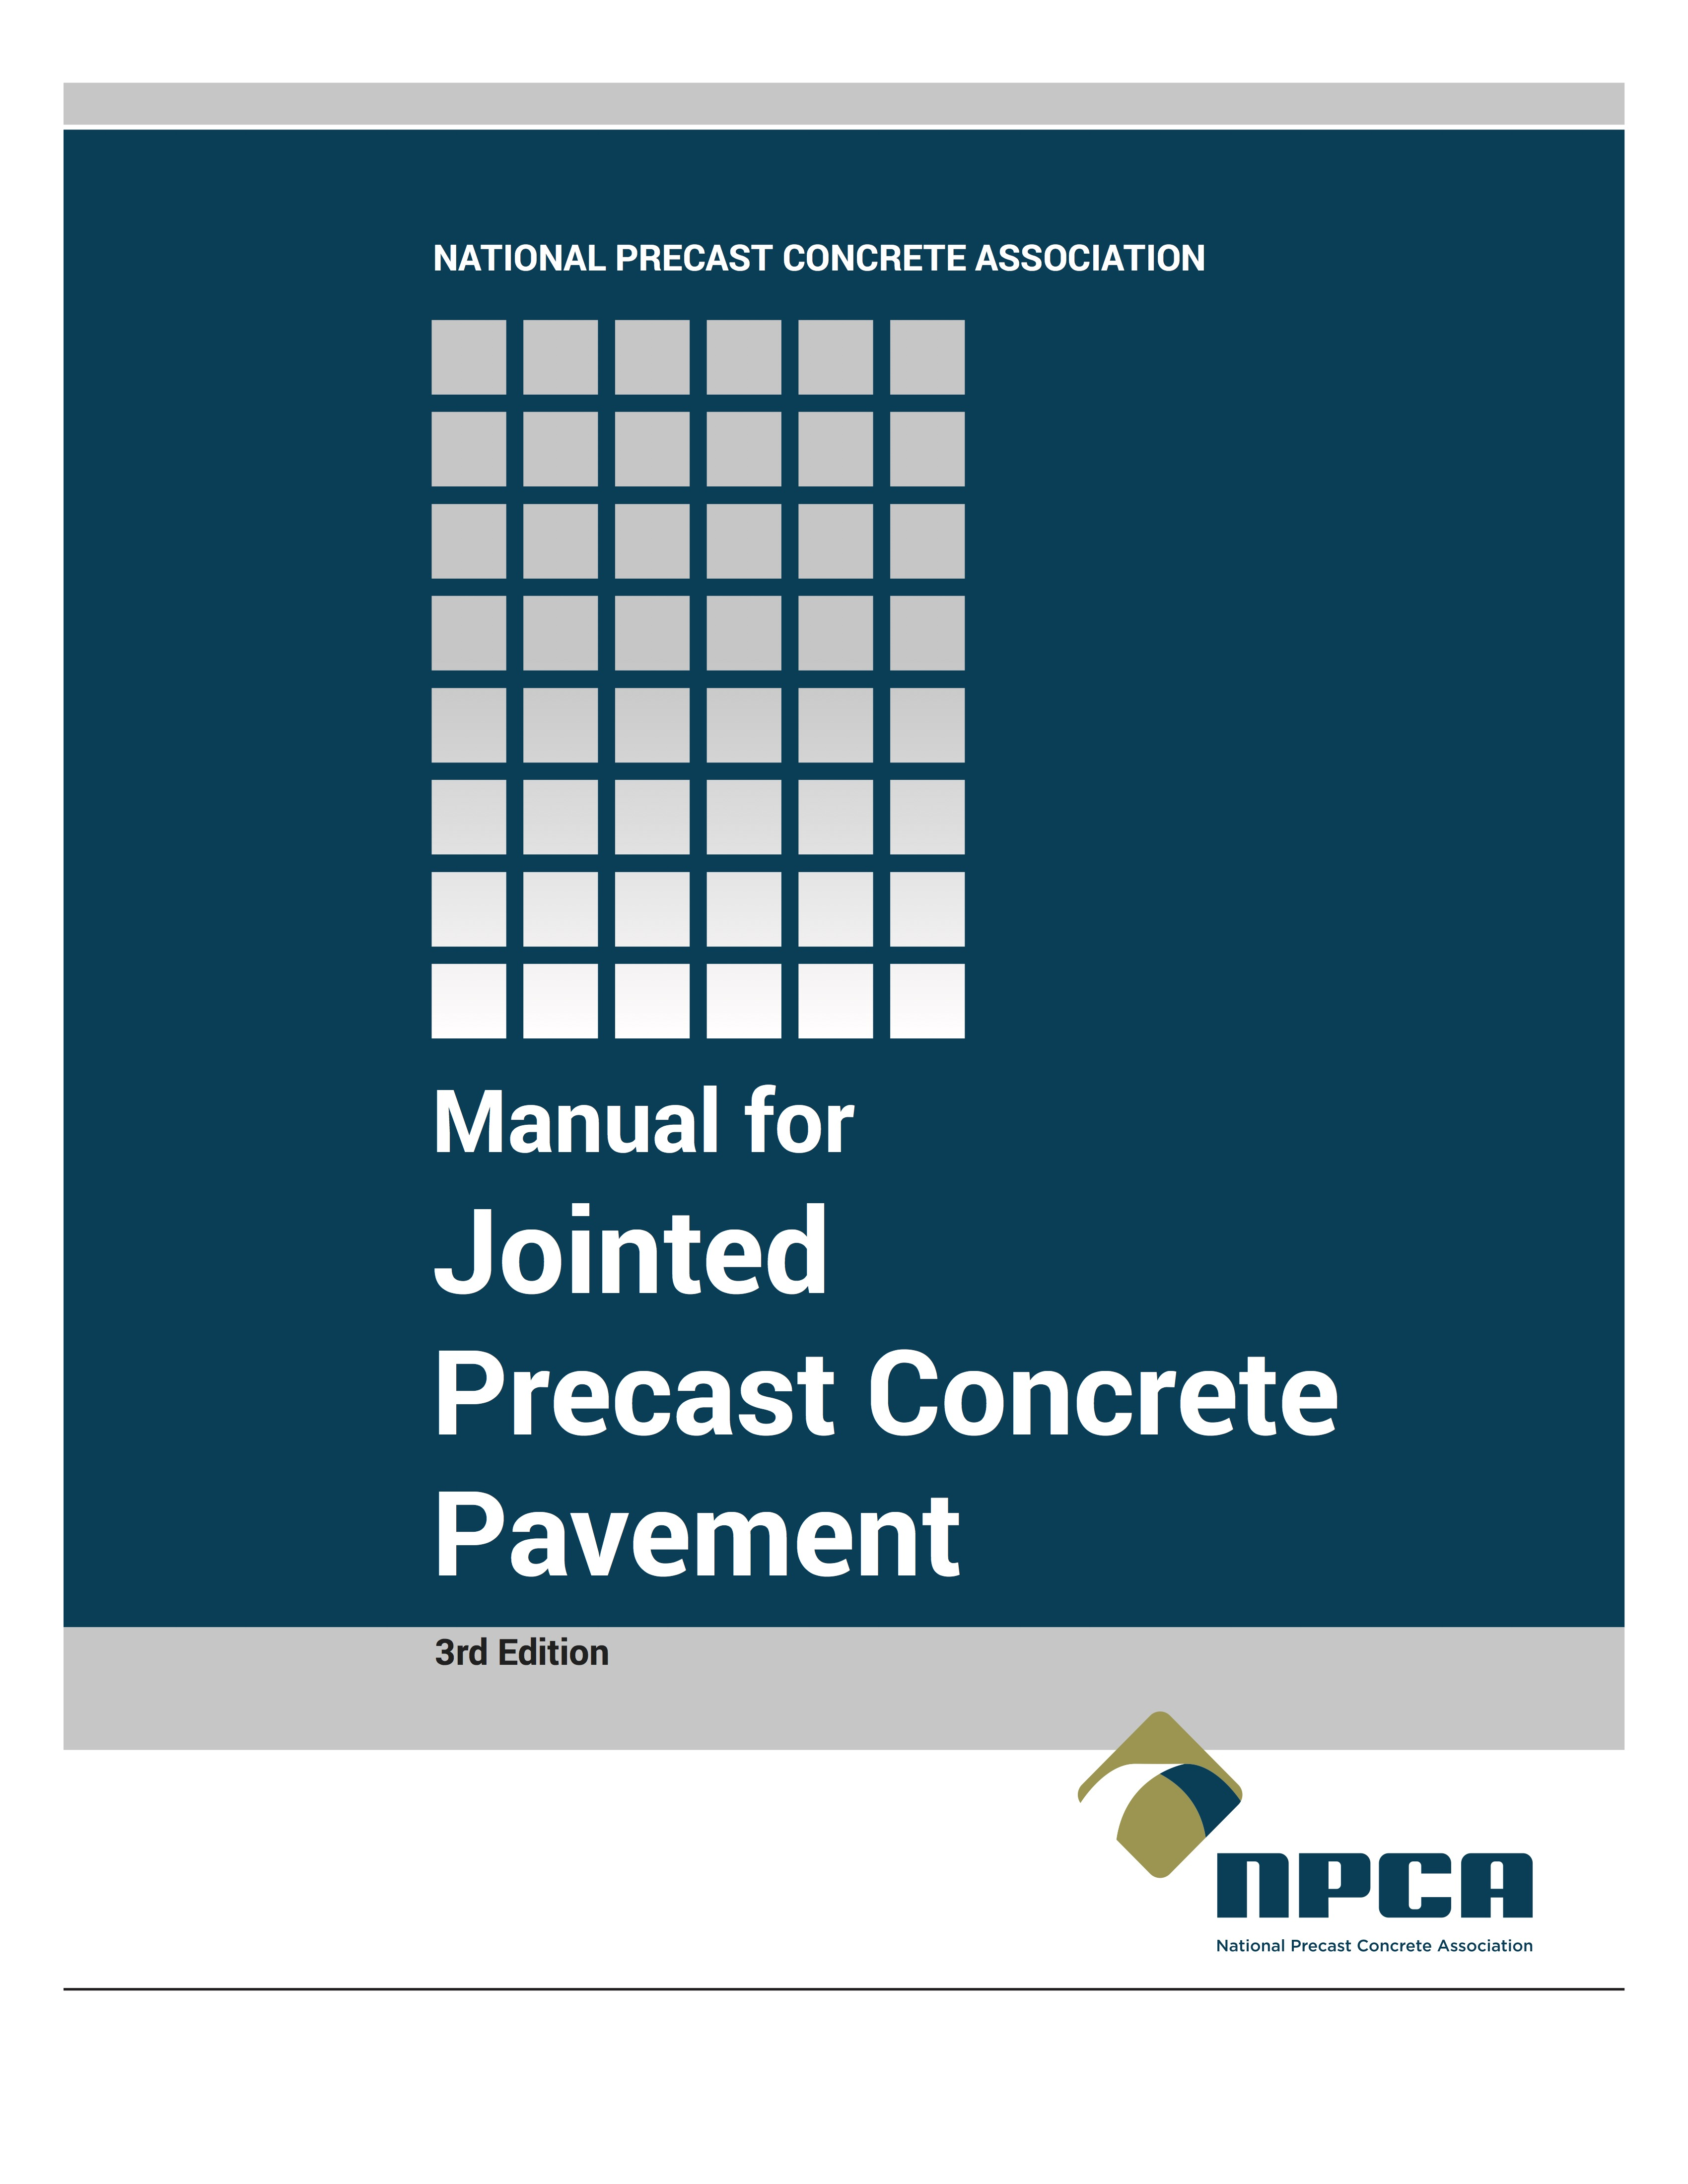 1 NPCA's 3rd Edition of Manual for Jointed Precast Concrete Pavement